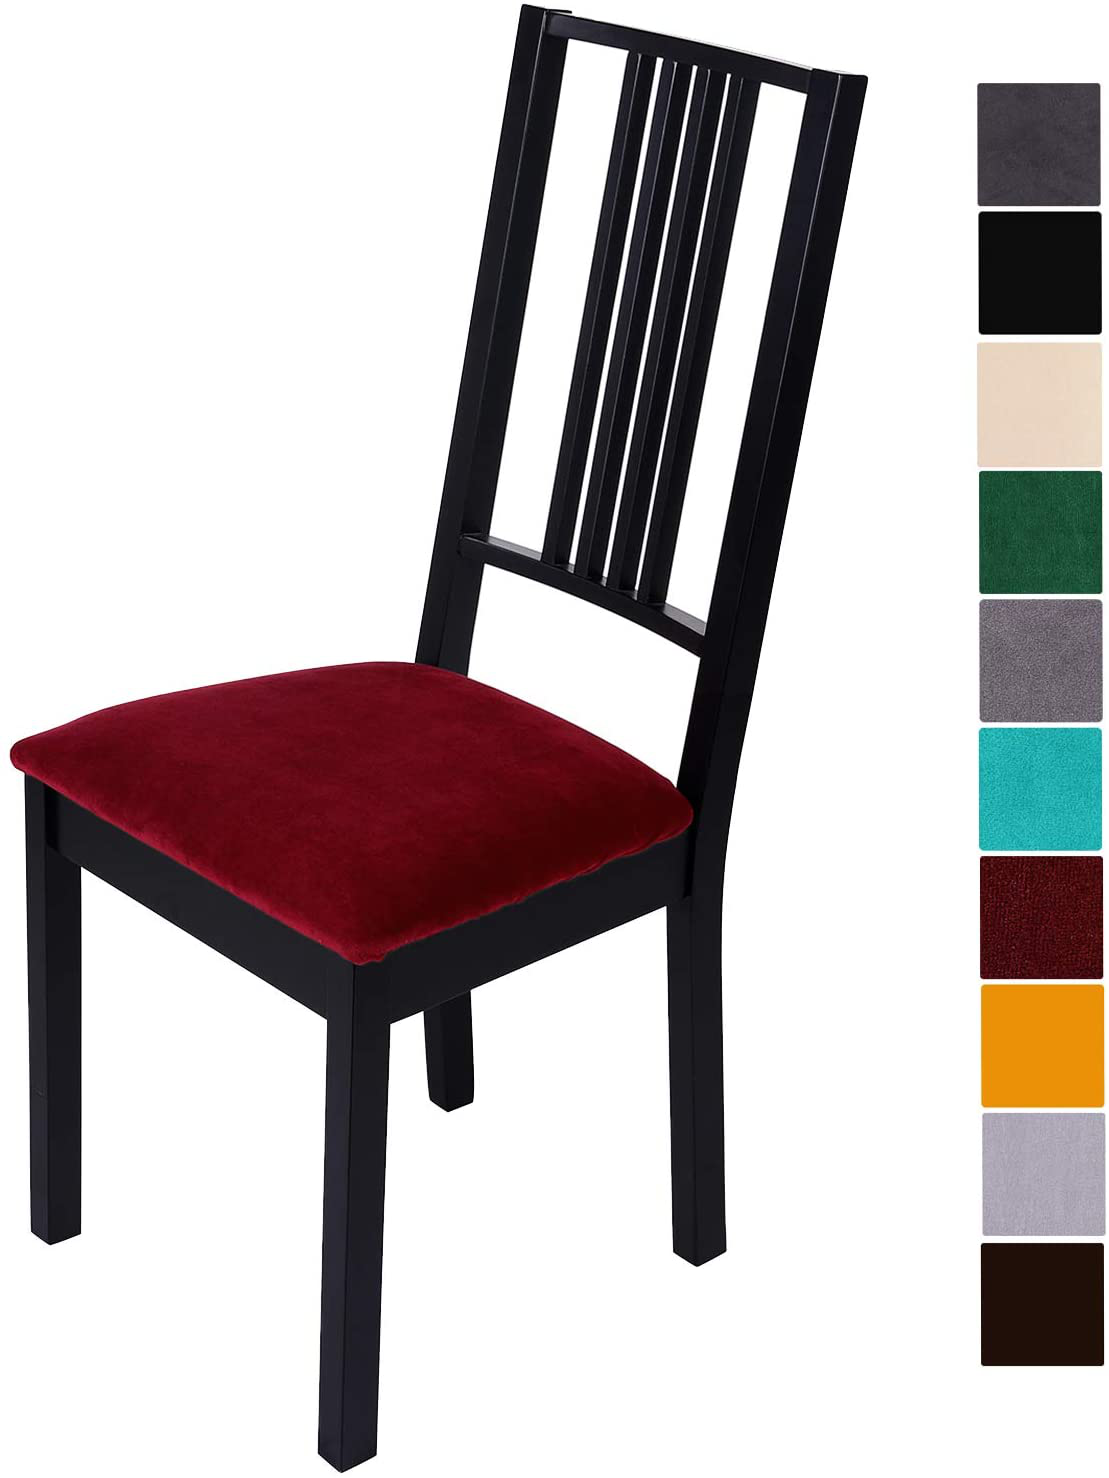 Washable Removable Soft Chair Seat C Homaxy Velvet Dining Room Chair Seat Cover